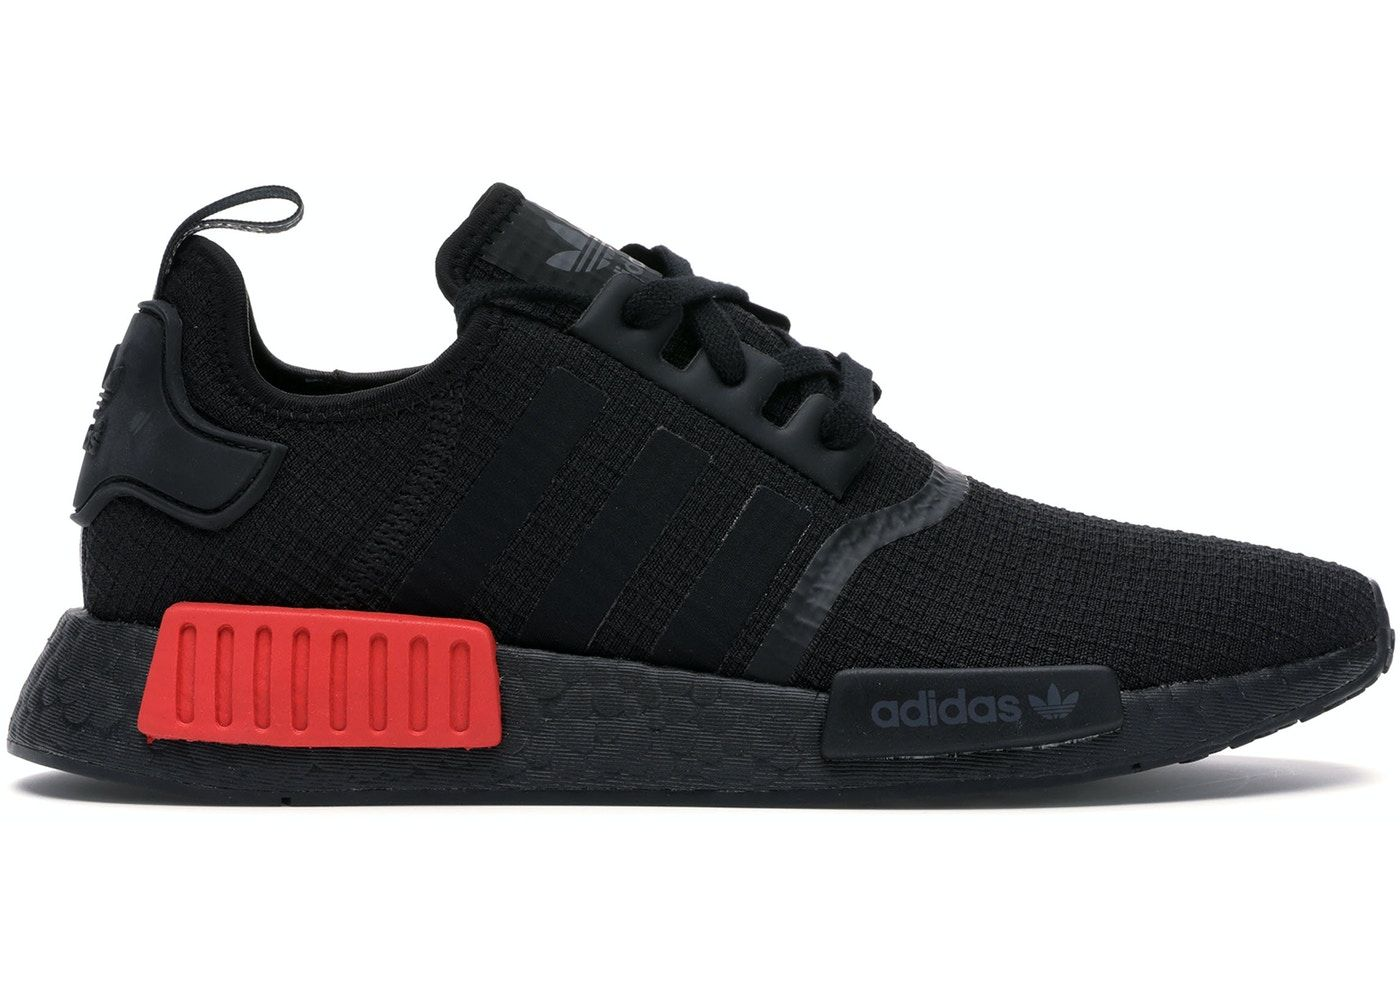 adidas NMD R1 Core Black Lush Red in